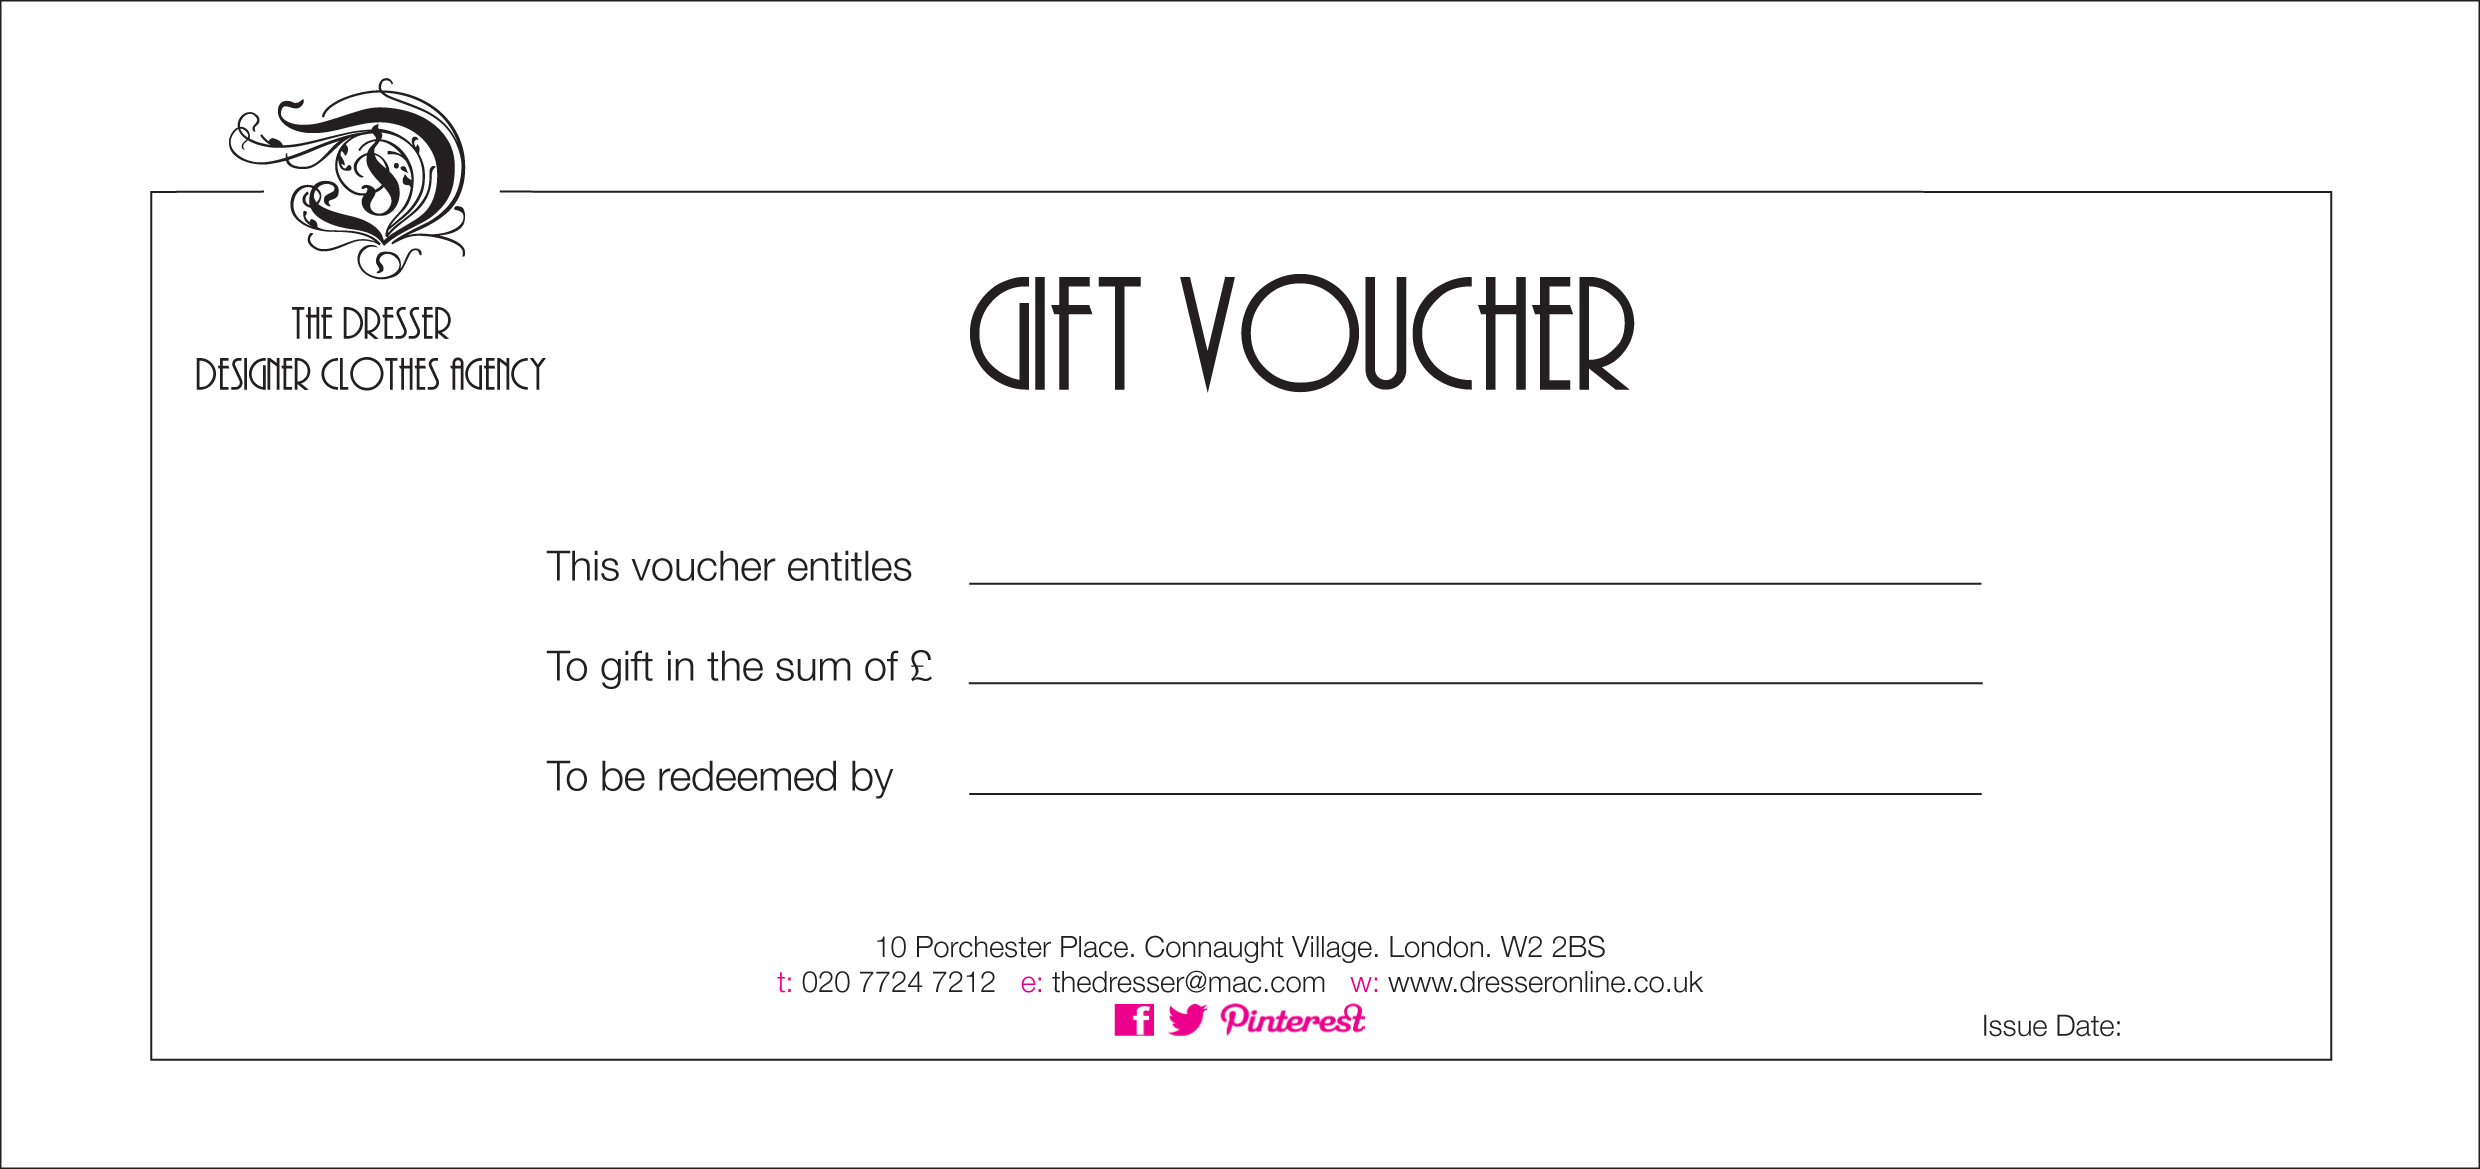 Gift voucher template word free download planner for Downloadable gift certificate templates